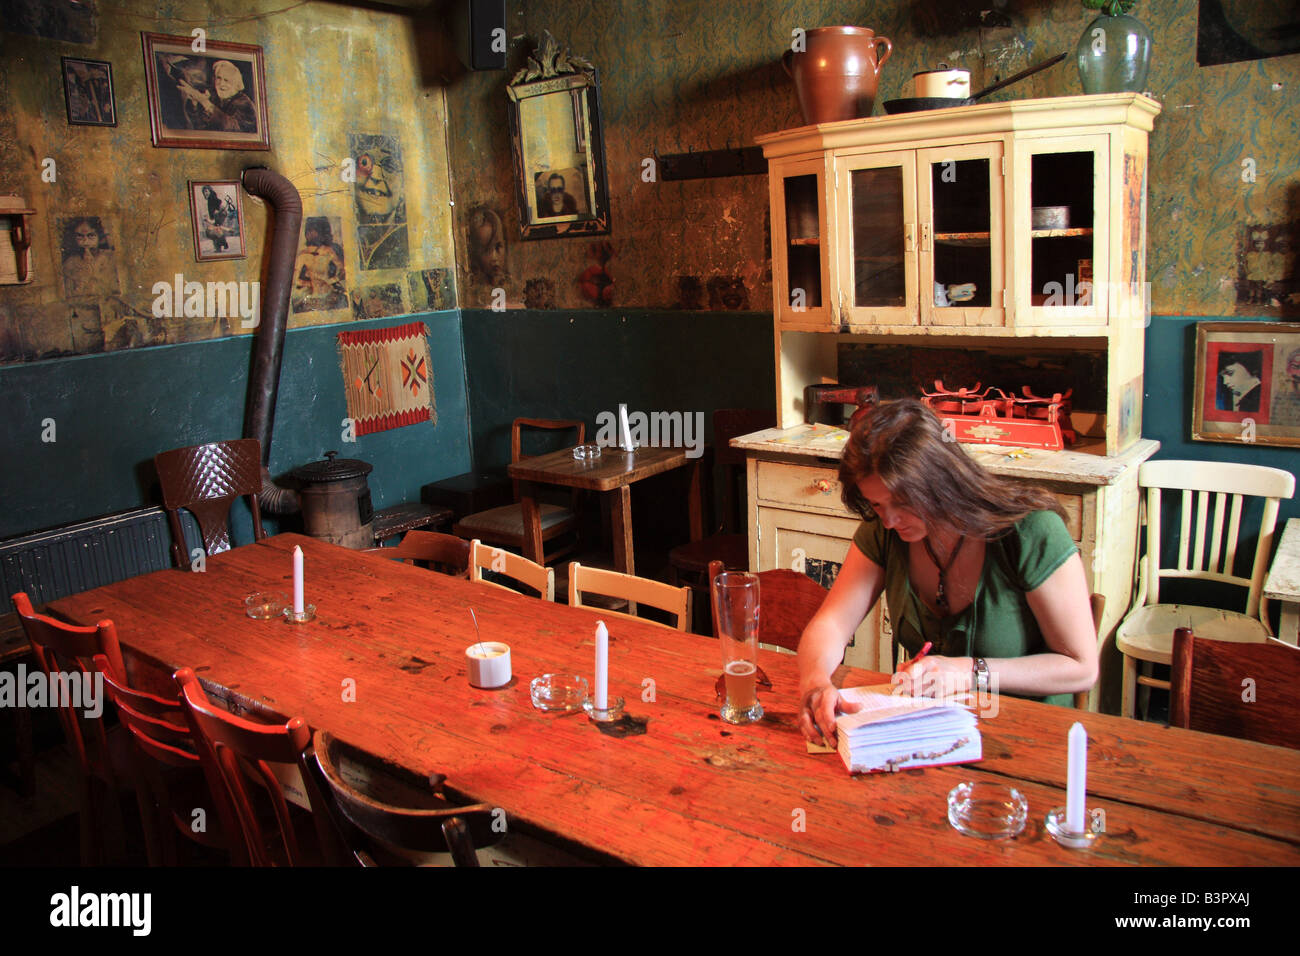 Woman In The Basement Room Of The Flamboyantly Decorated Alchemia Bar In  Kazimierz; The Jewish Quarter Of Krakow, Poland